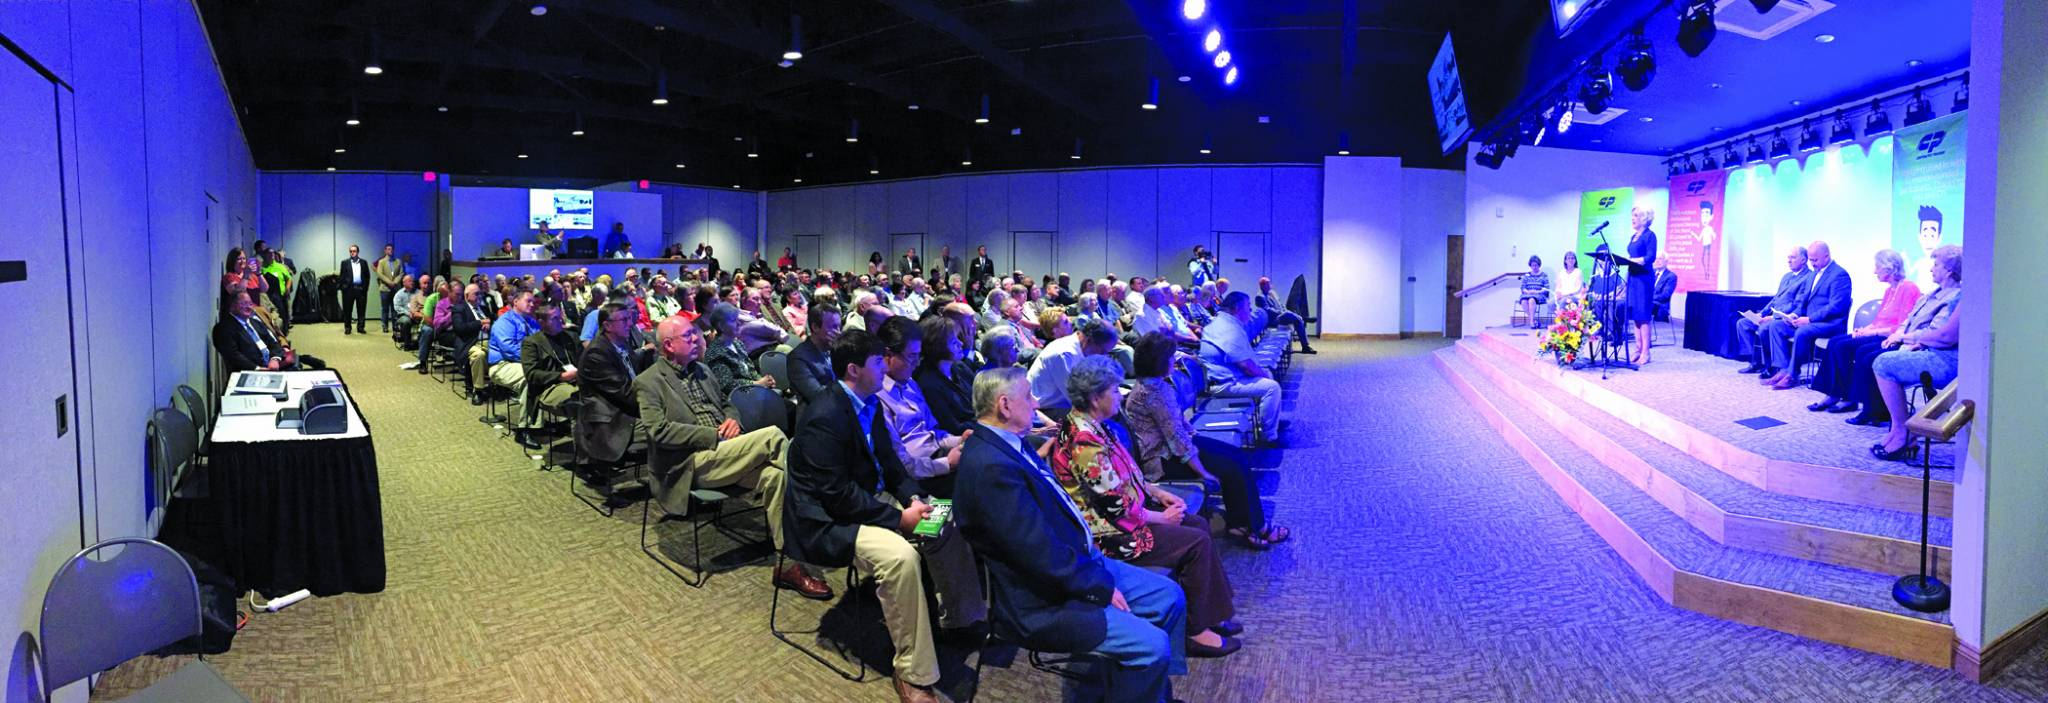 A standing room only crowd fills the auditorium of the Georgia Barnette Conference Center during its dedication ceremony Sept. 27, 2016. Brian Blackwell photo